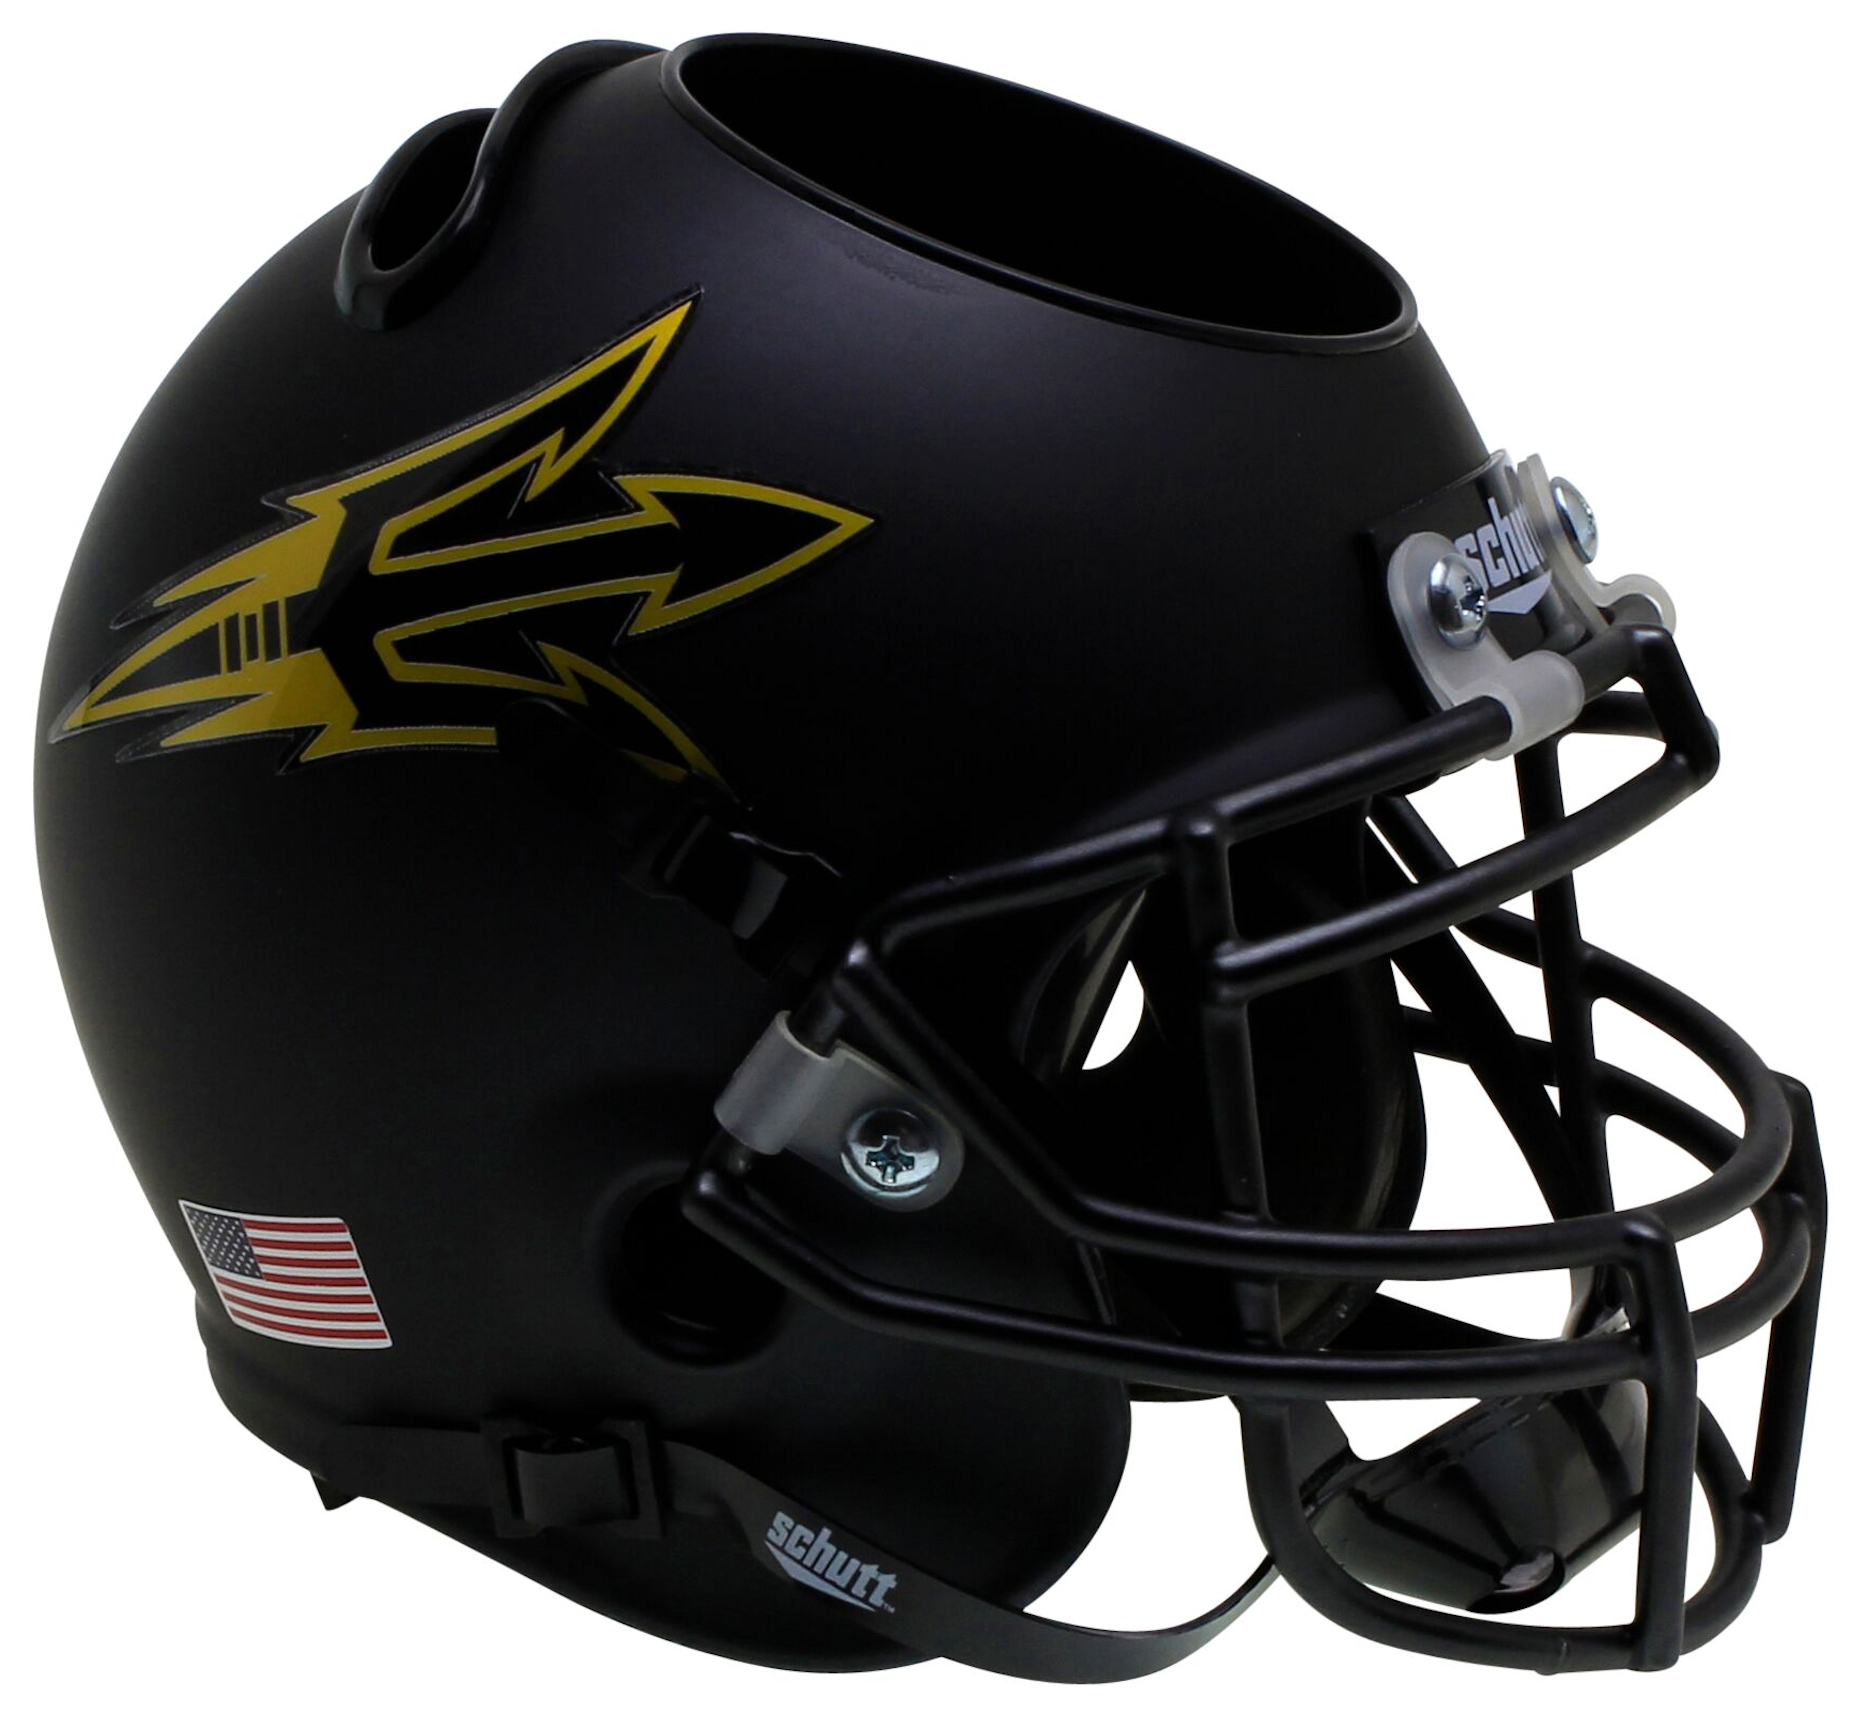 Arizona State Sun Devils Miniature Football Helmet Desk Caddy <B>Matte Black Small Pitchfork</B>